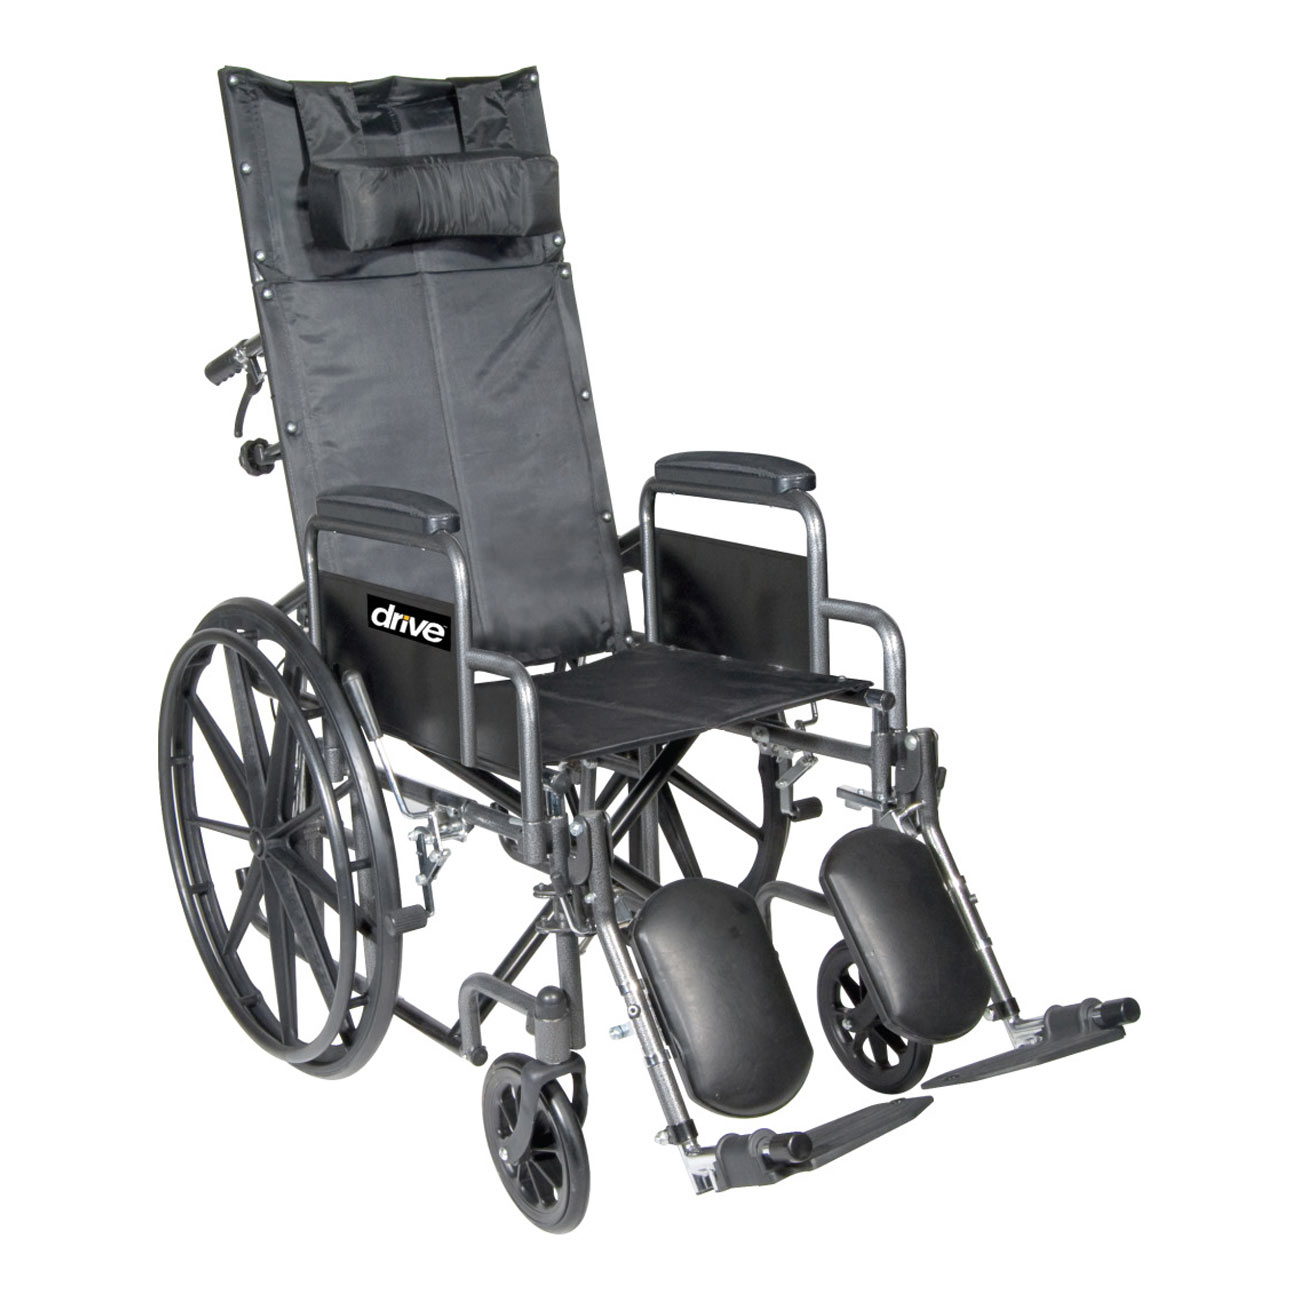 Chrome Sport Full-Reclining Wheelchair - 18 in. w-Desk Arms